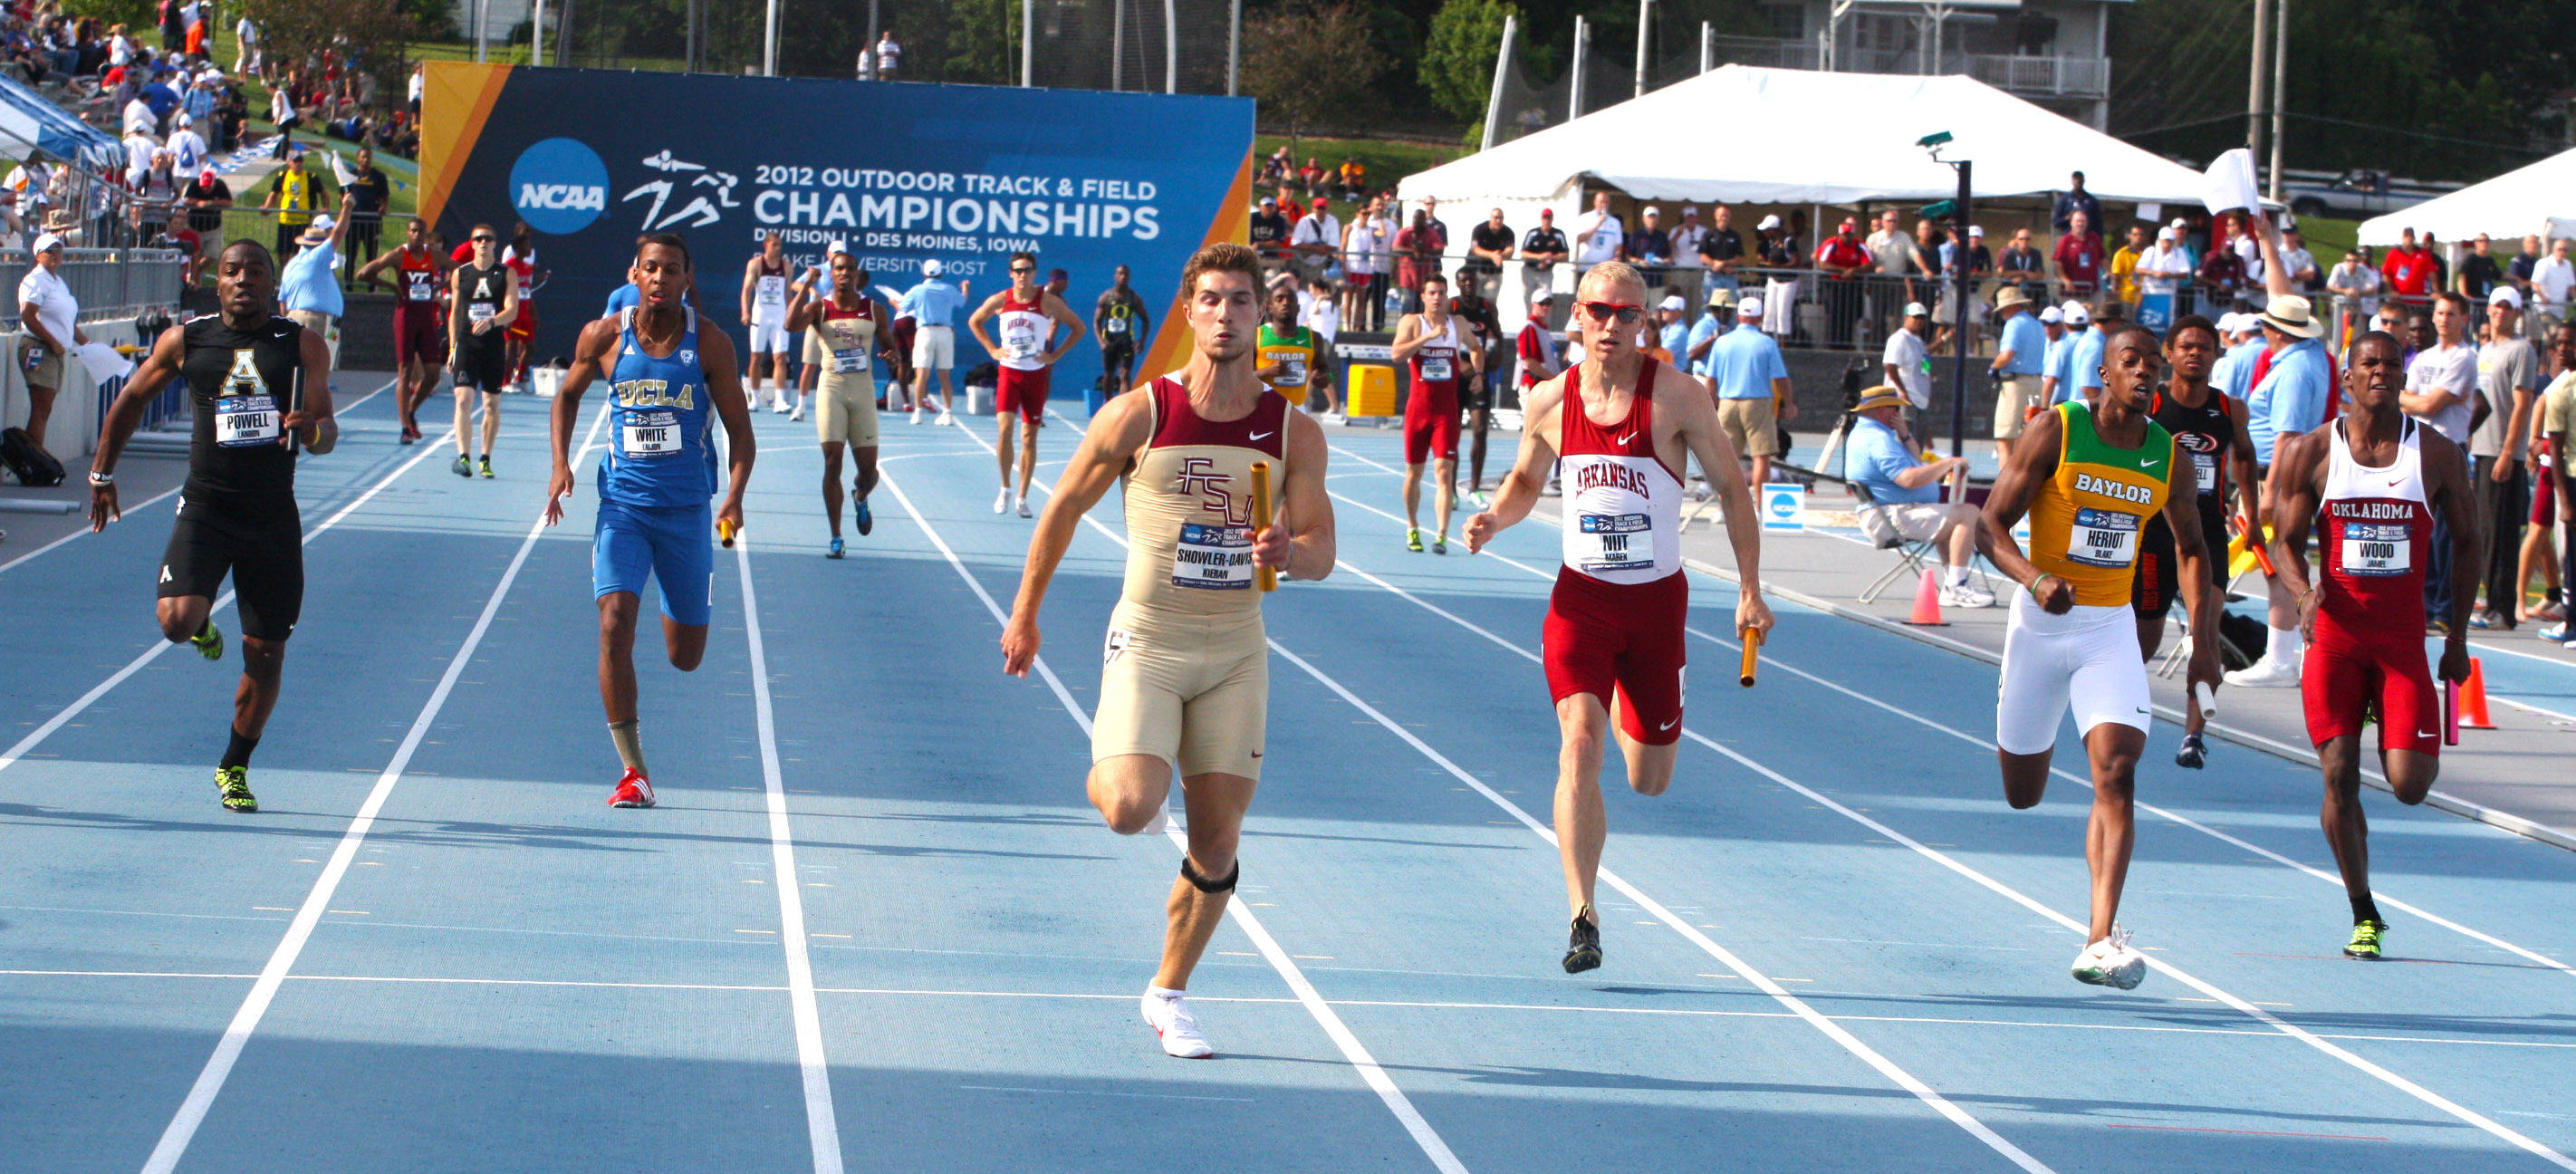 Kieran Showler-Davis brings home the baton as FSU wins its NCAA Championship semifinal heat.